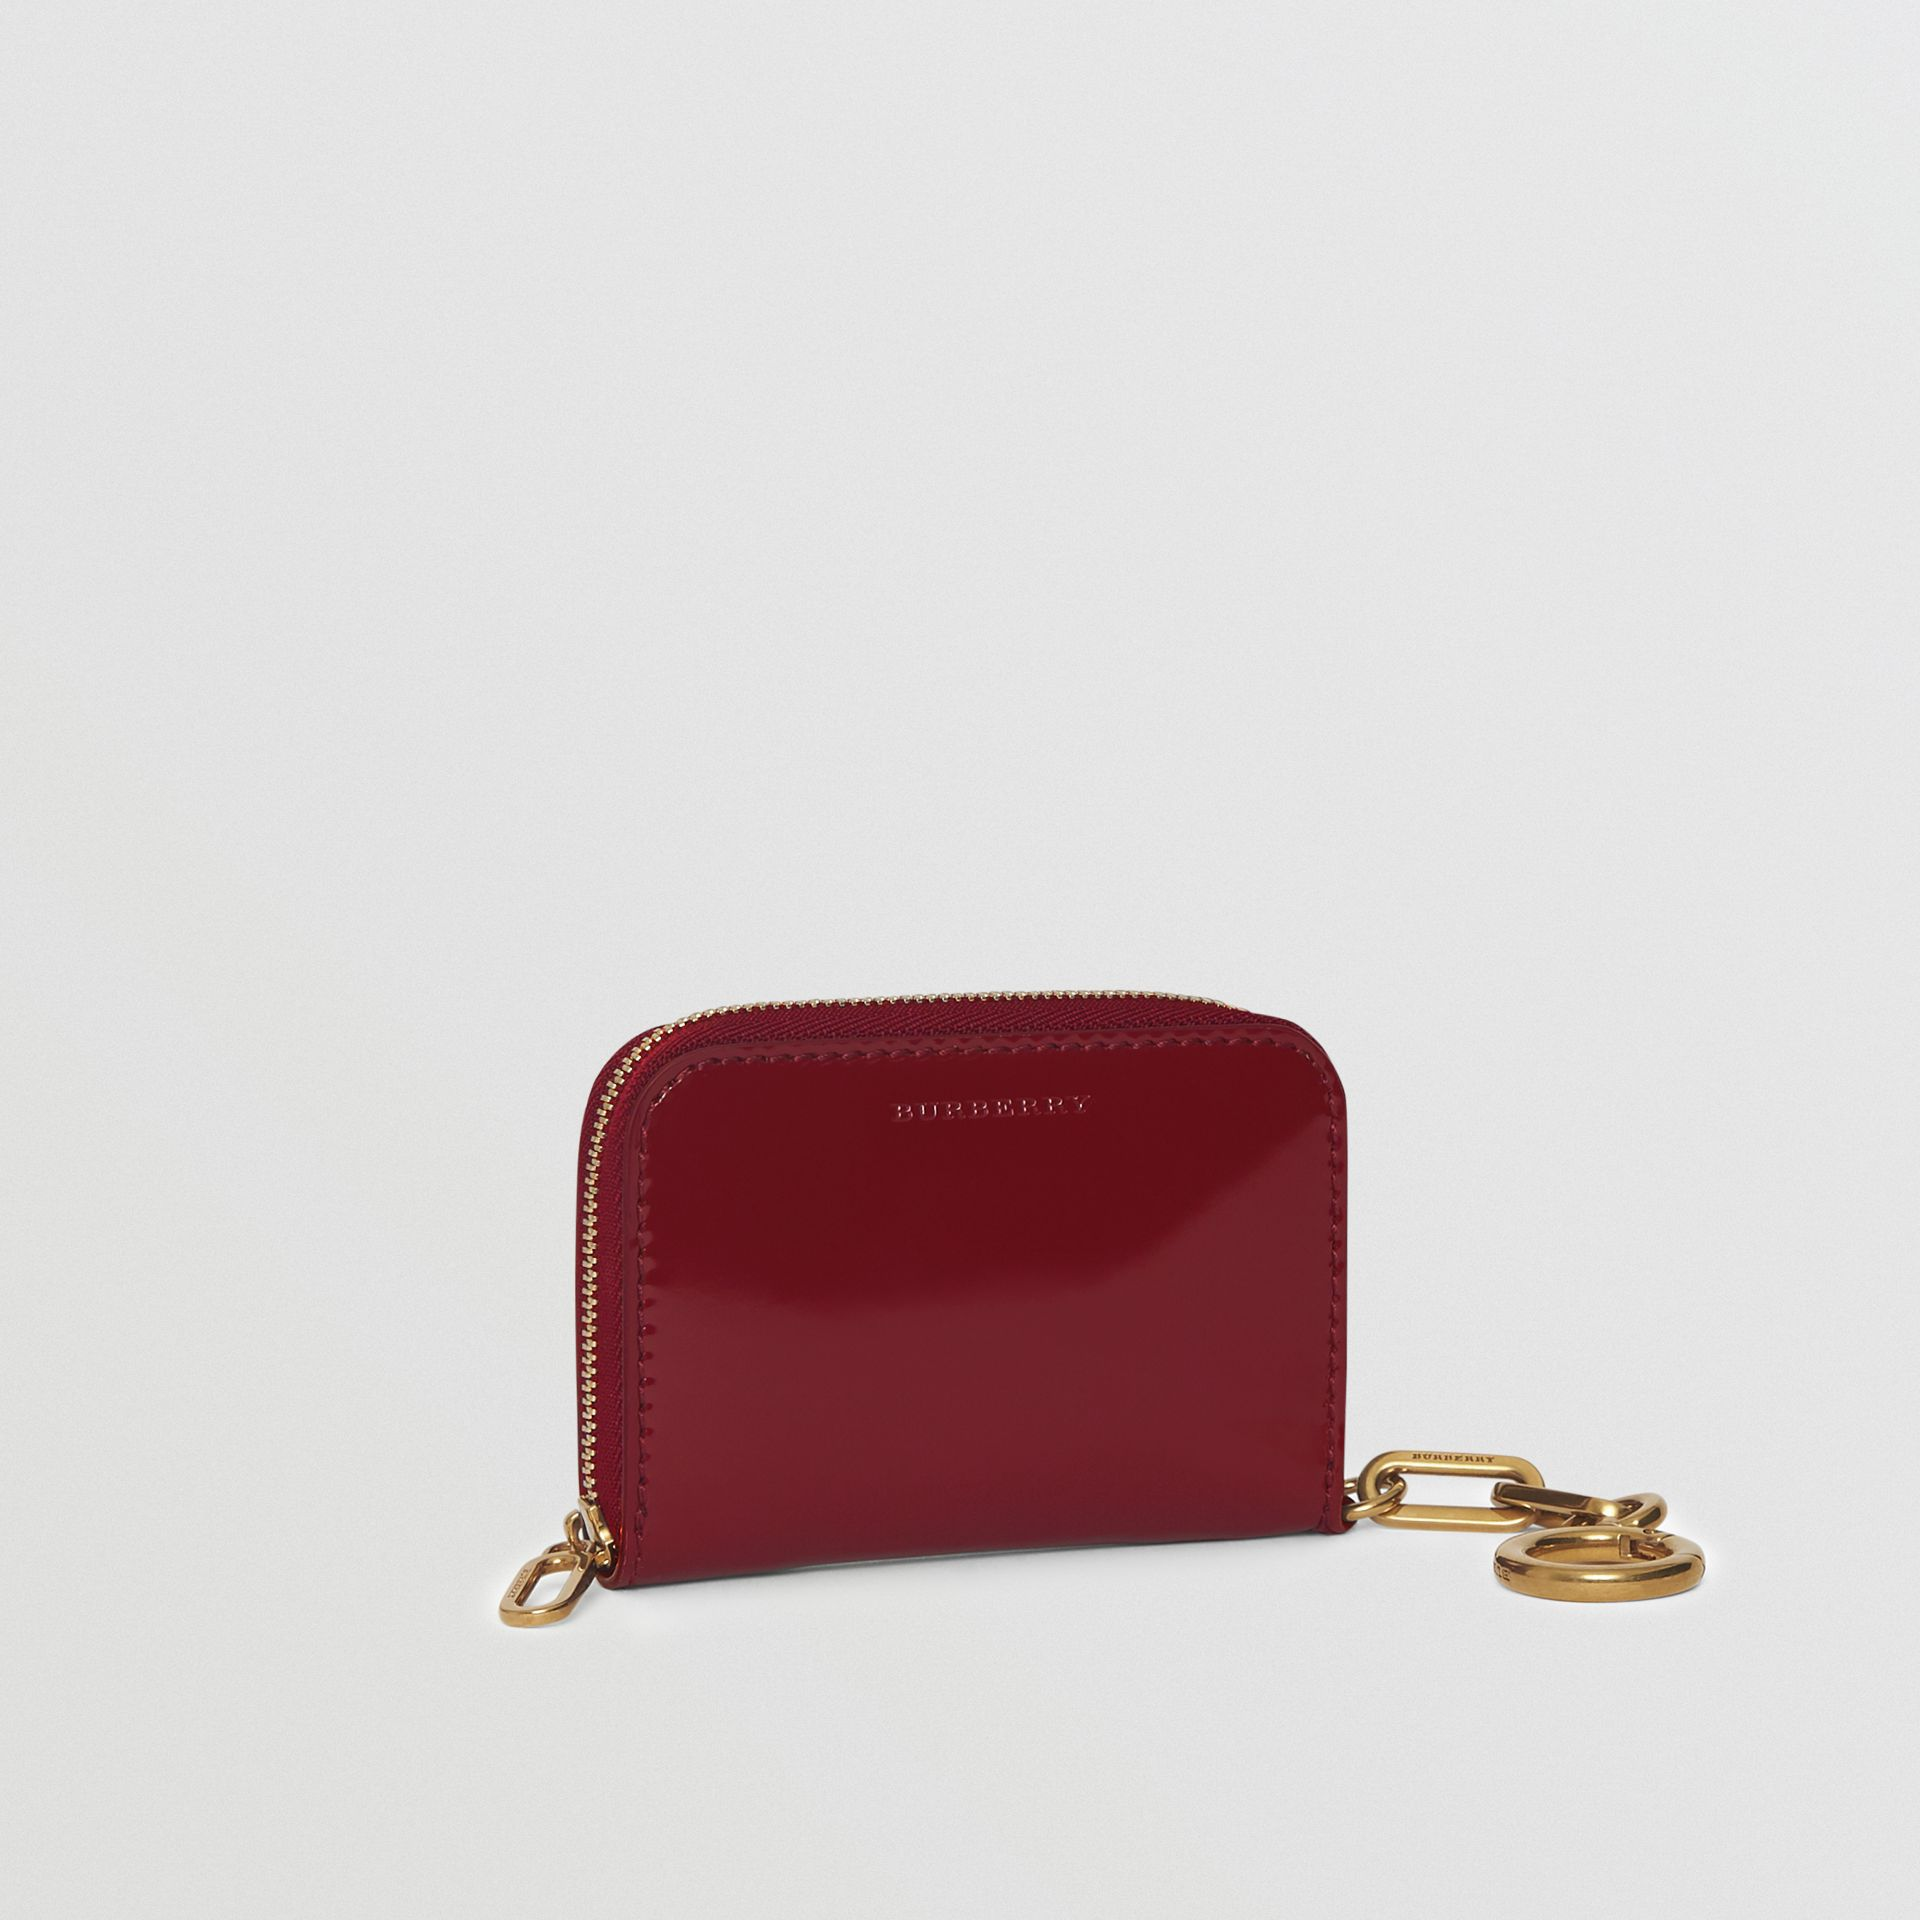 Link Detail Patent Leather Ziparound Wallet in Crimson - Women | Burberry - gallery image 4